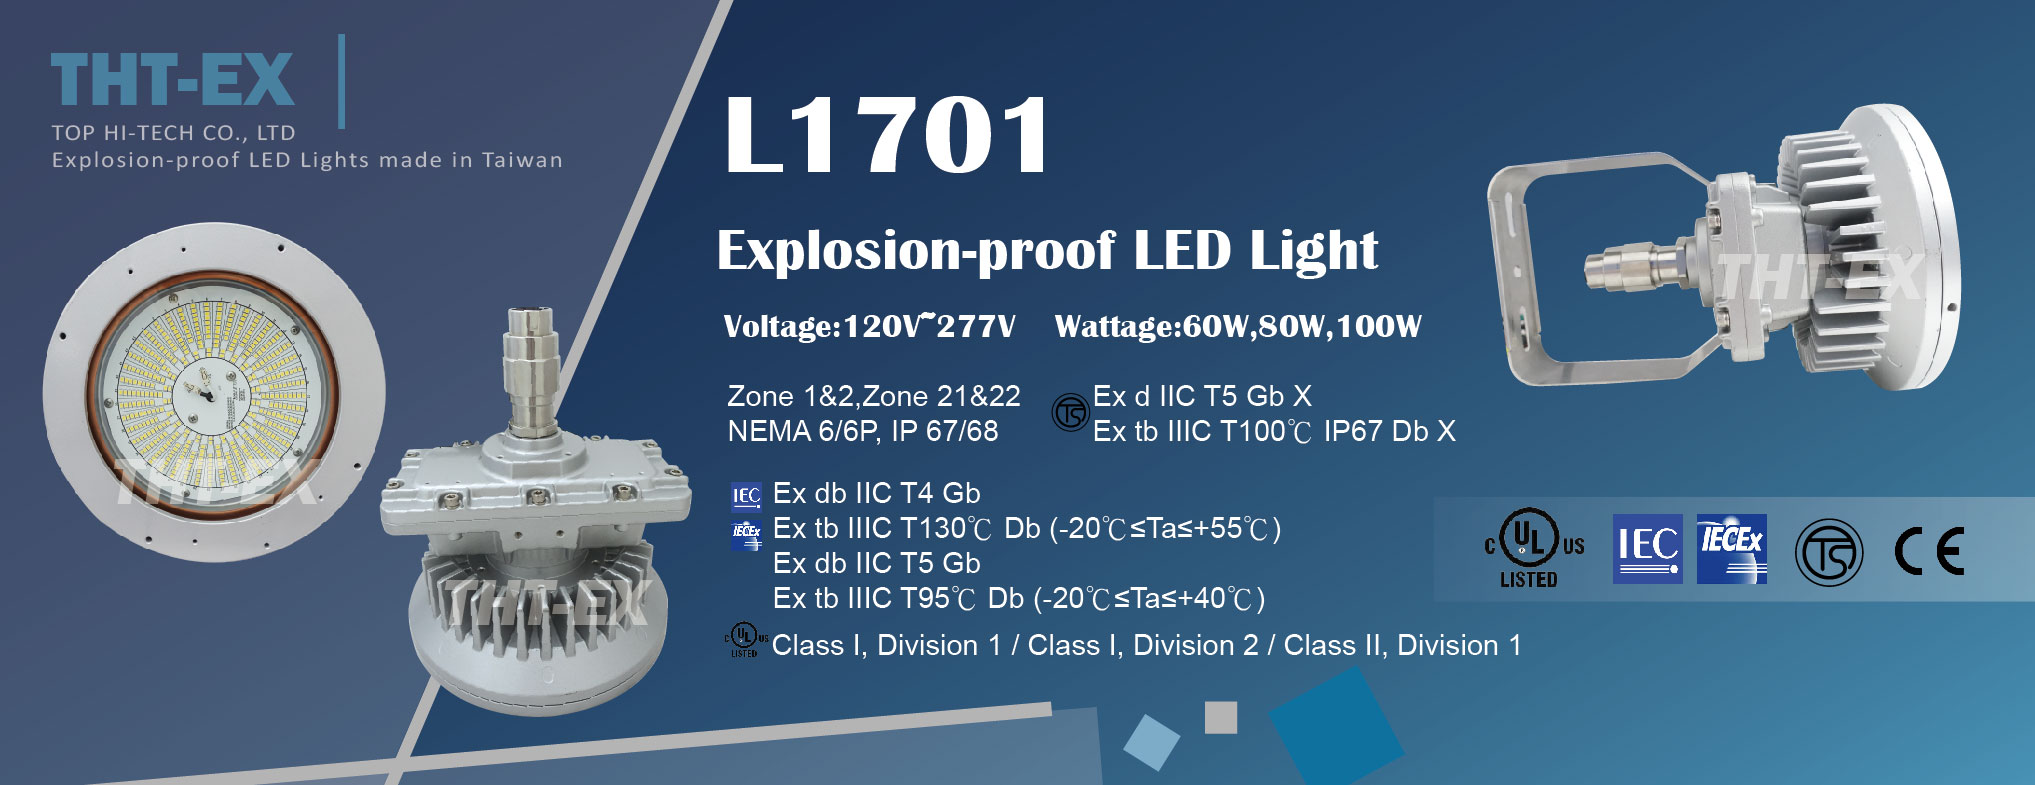 THT-EX's first full voltage product L1701 has granted UL